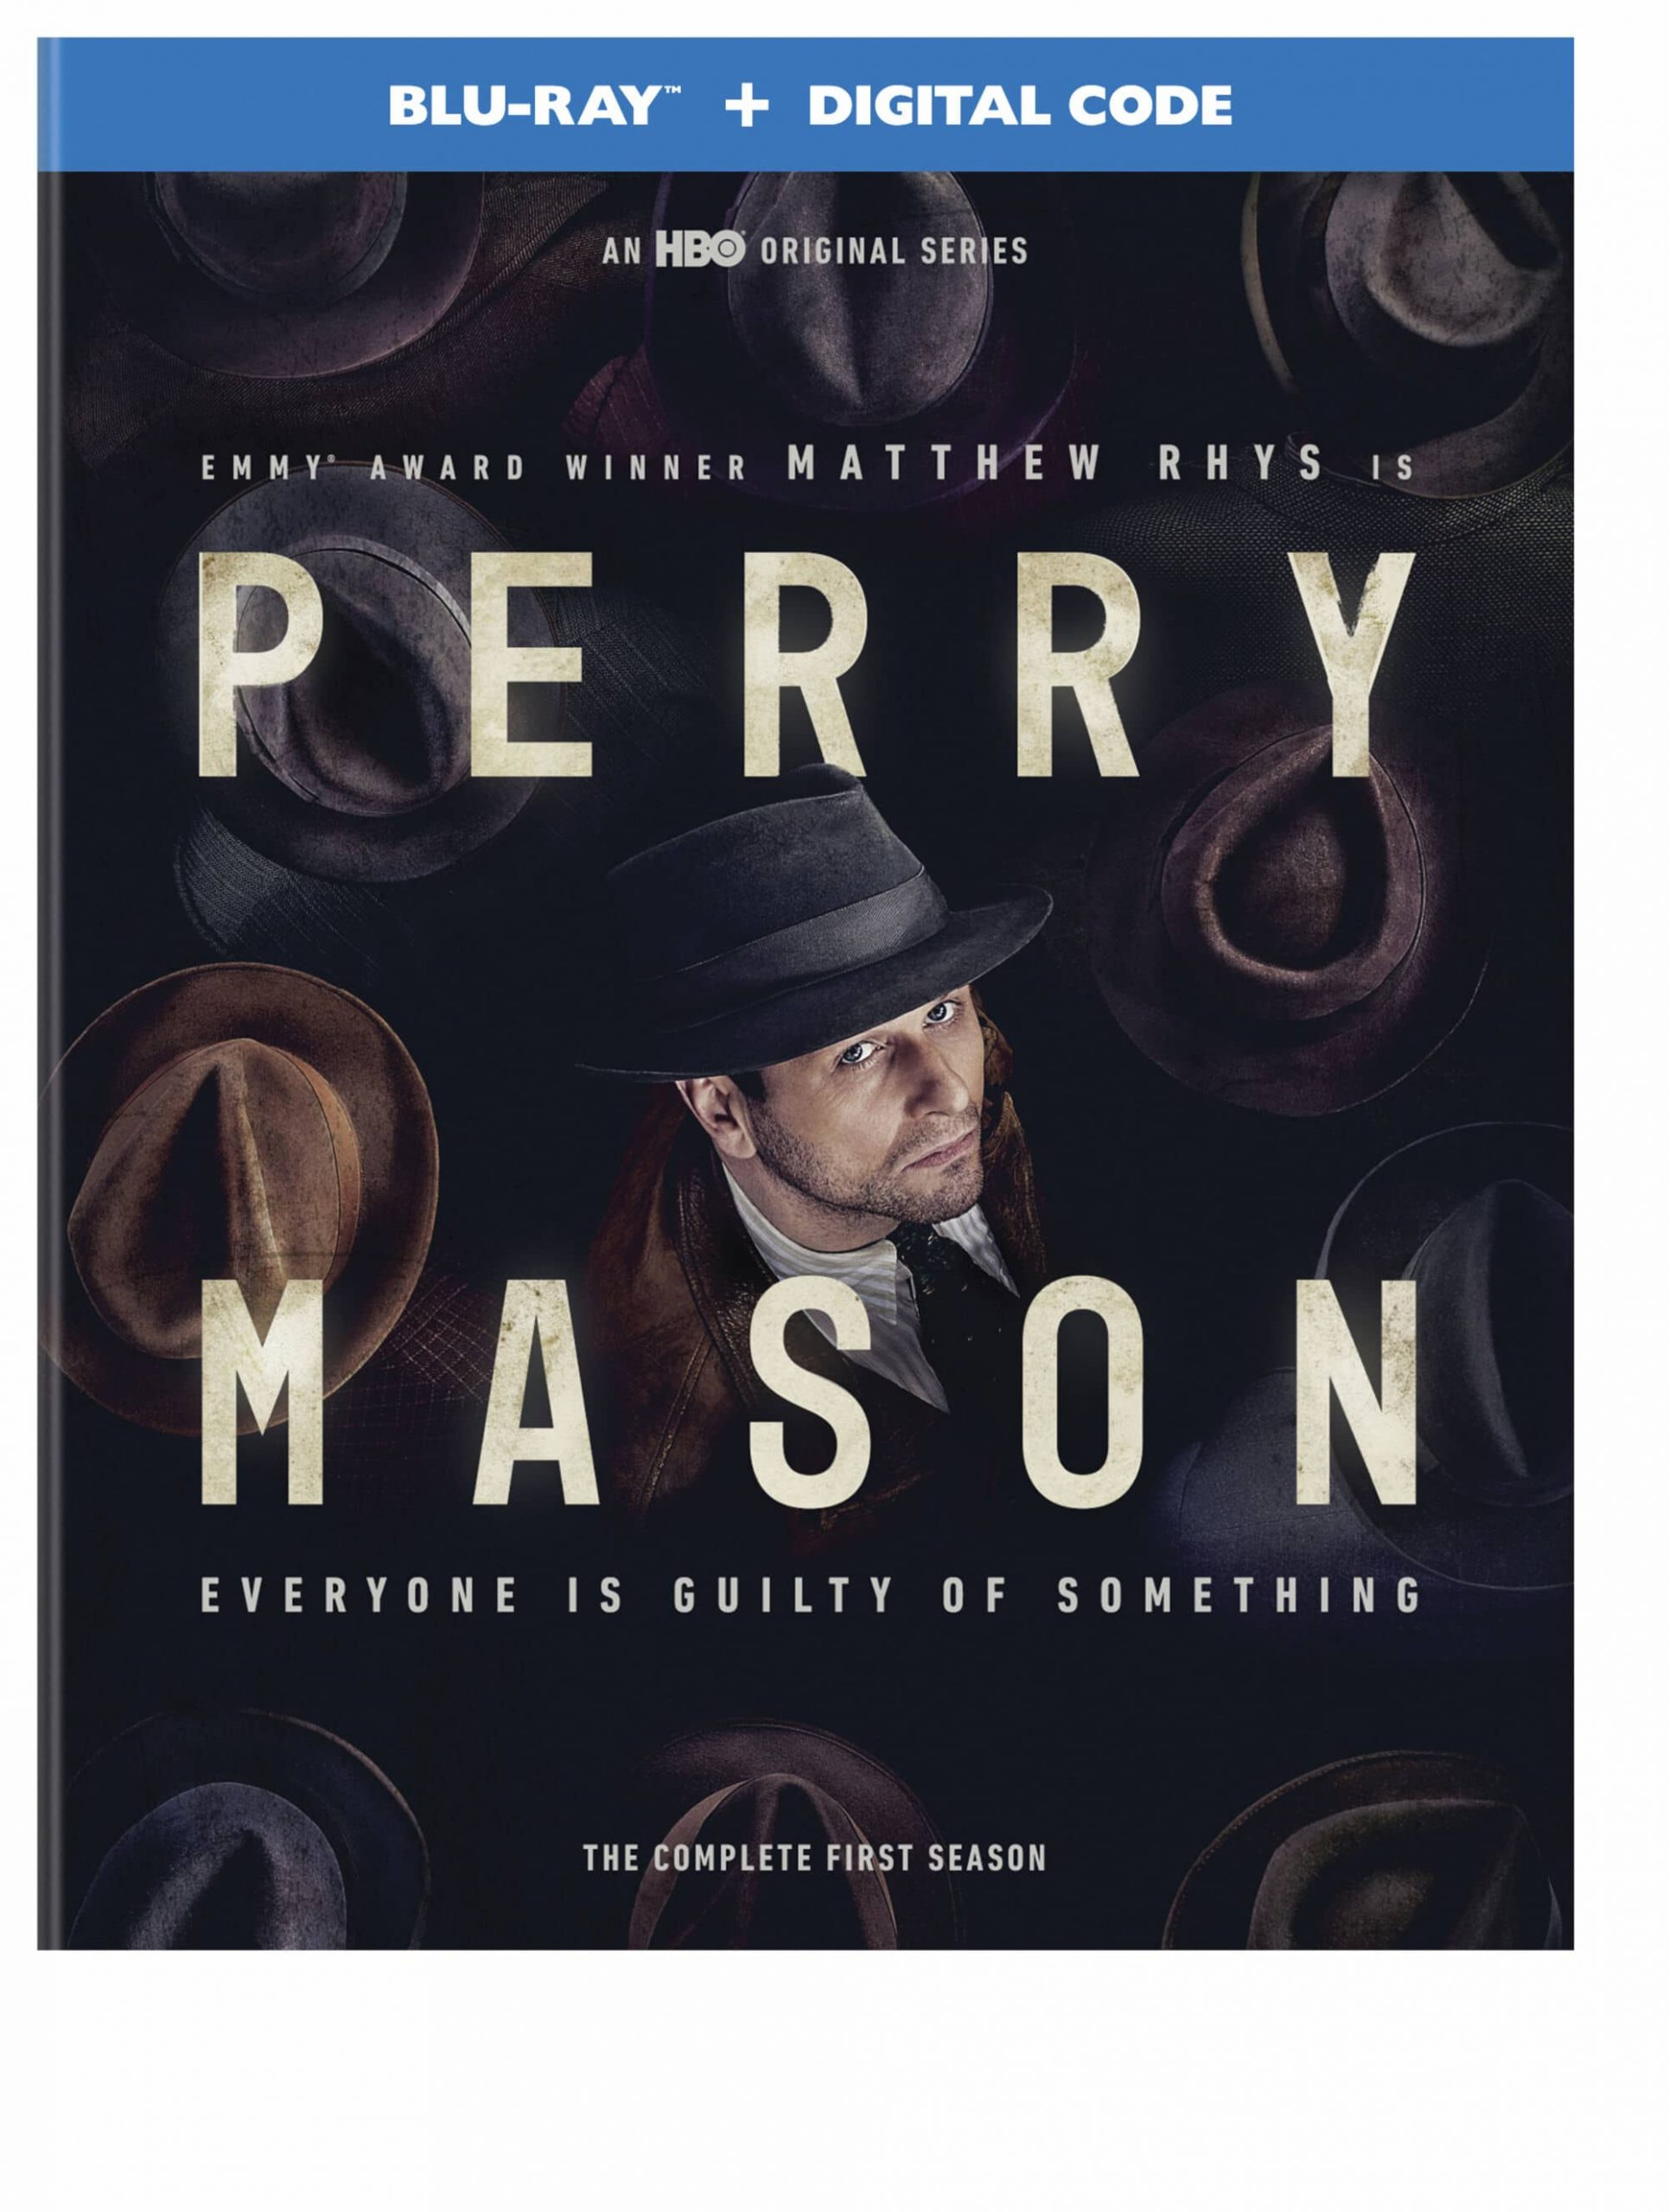 Perry Mason S1 BD Boxart2 scaled